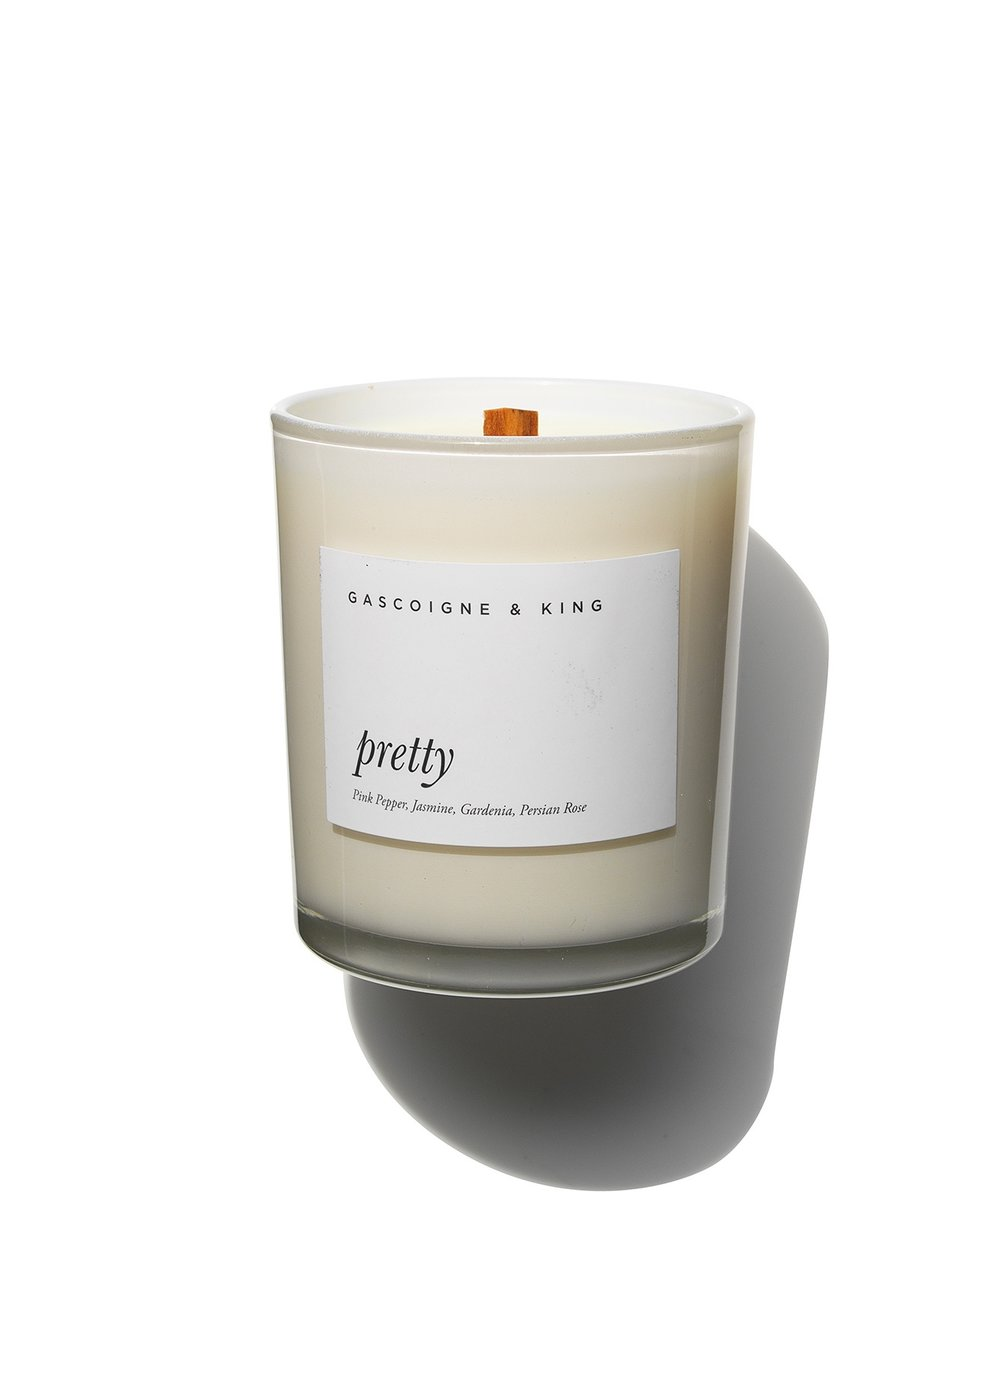 GRITTY PRETTY Pretty Candle  Pretty is for the divine feminine. A charming and alluring bouquet of jasmine, gardenia and Persian rose with the surprising twist of pink pepper and coriander. In life, some things are for certain; the French do good cheese, the Italians make good Sangiovese and  Pretty  will uplift and make any home inviting.